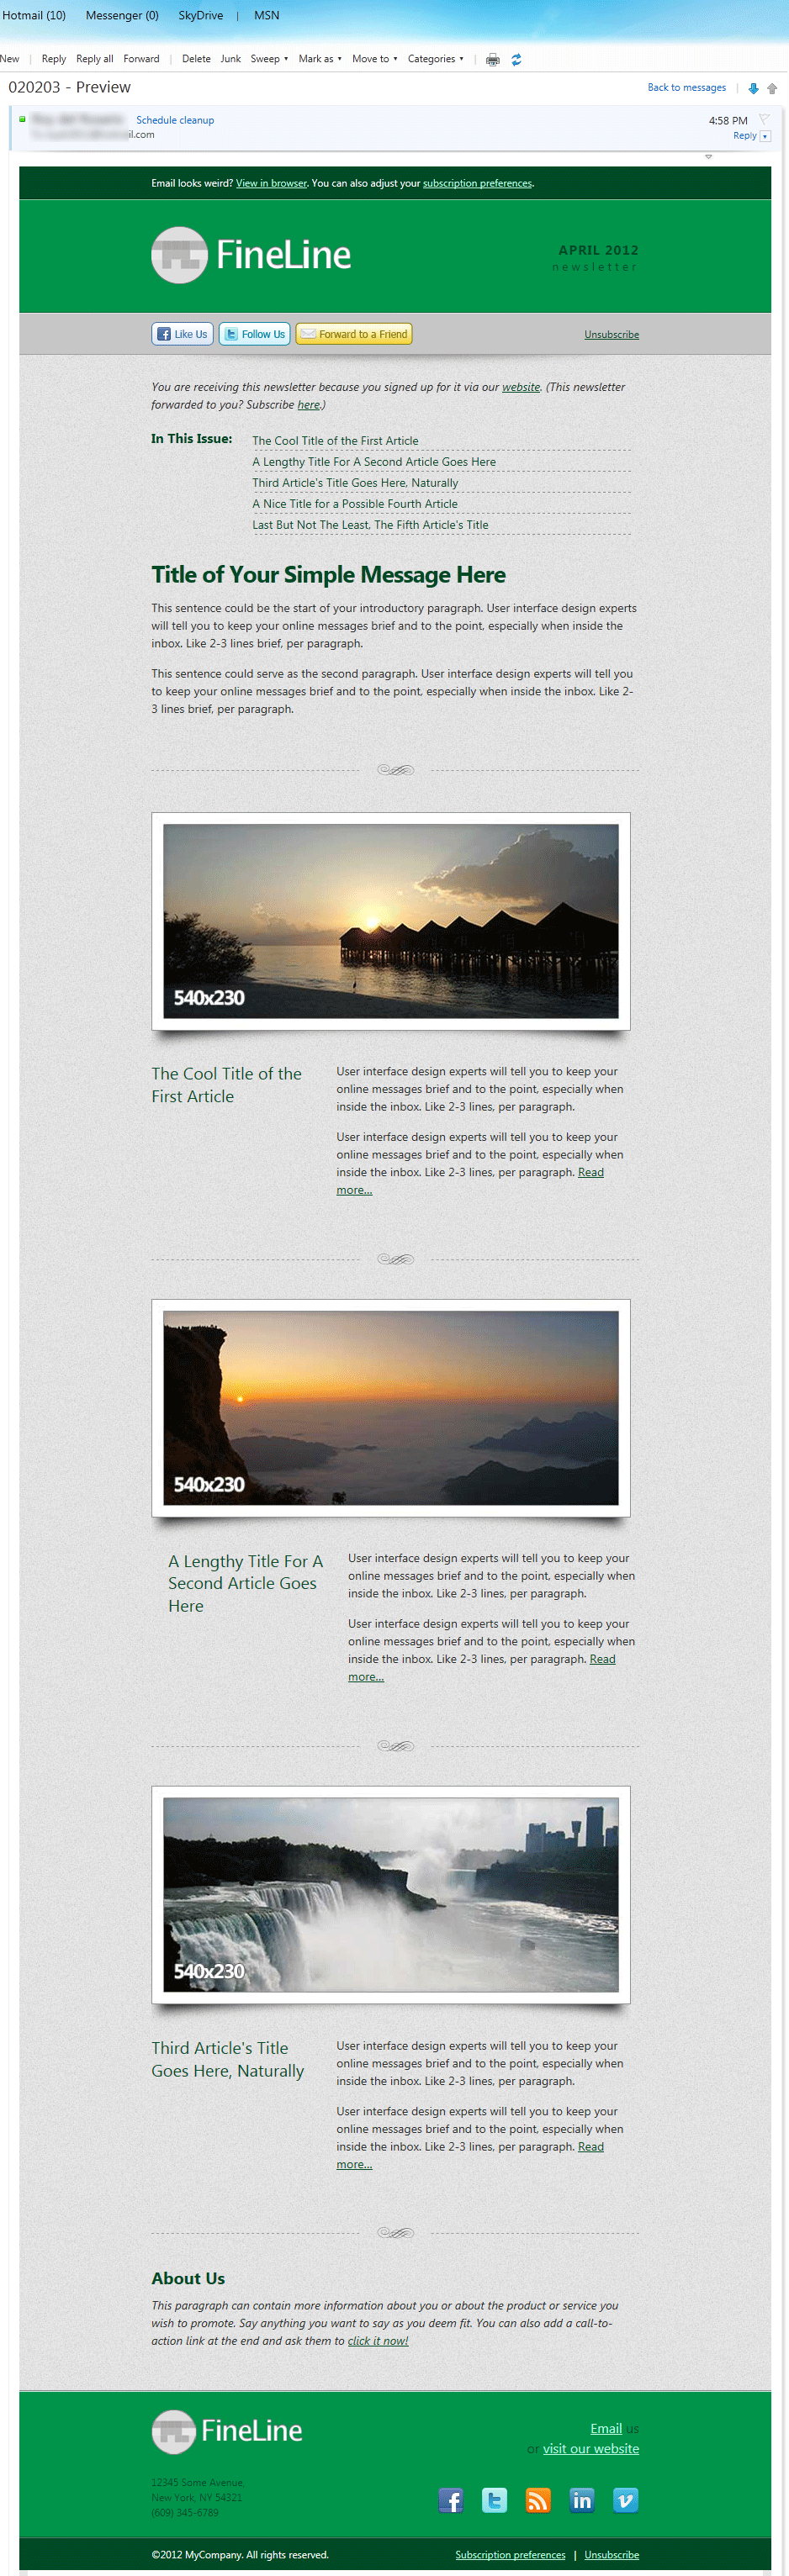 FineLine - Email Template - 30 Layouts 8 Colors - Screenshot in Hotmail, as viewed using Internet Explorer 9, in Windows 7.